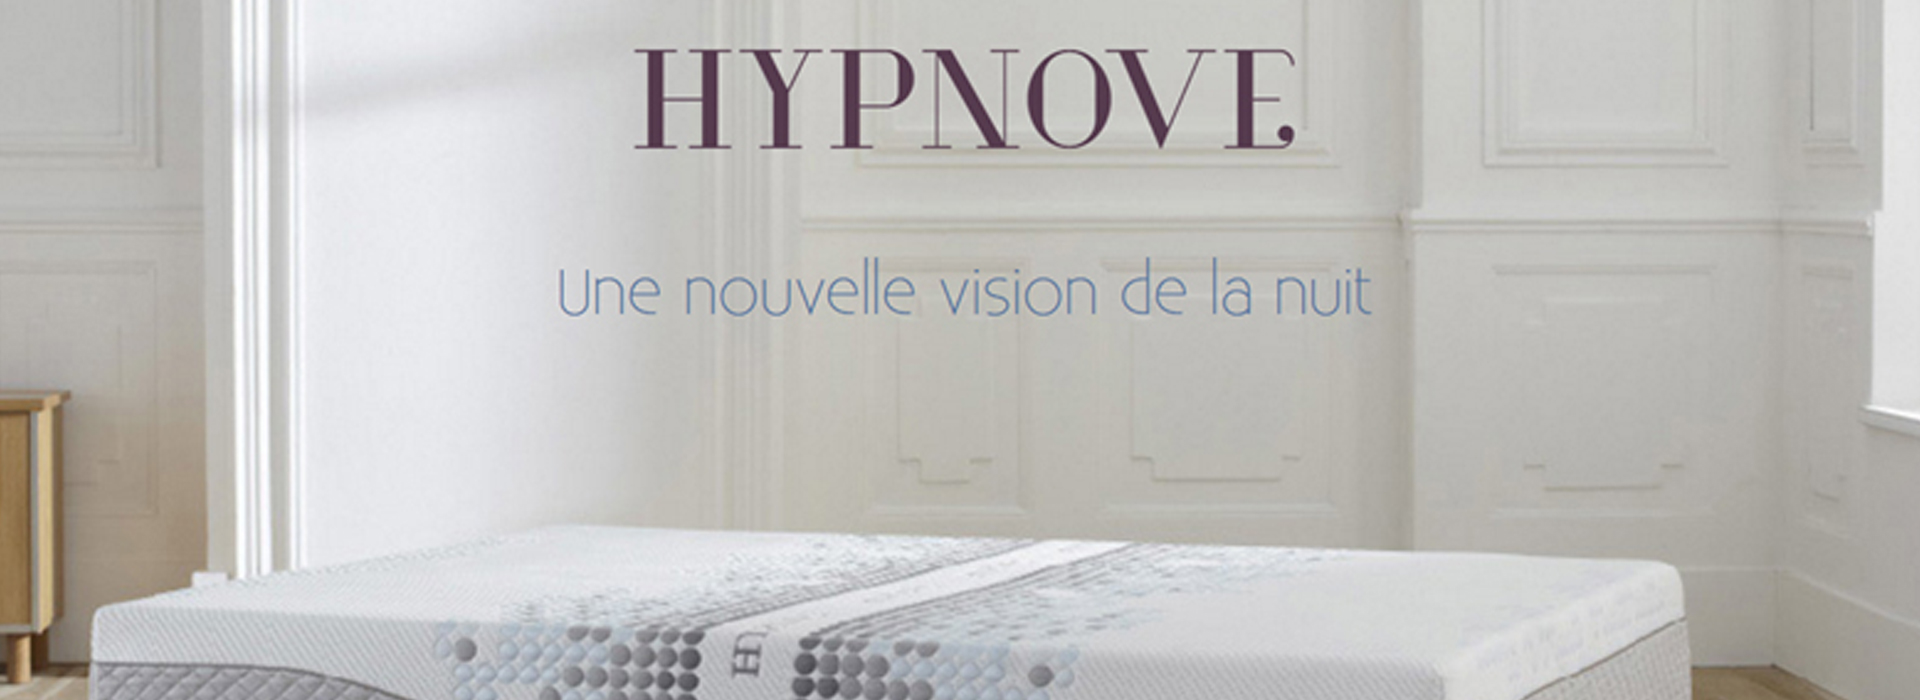 literie haut de gamme bourg en bresse hypnove dos sommeil. Black Bedroom Furniture Sets. Home Design Ideas